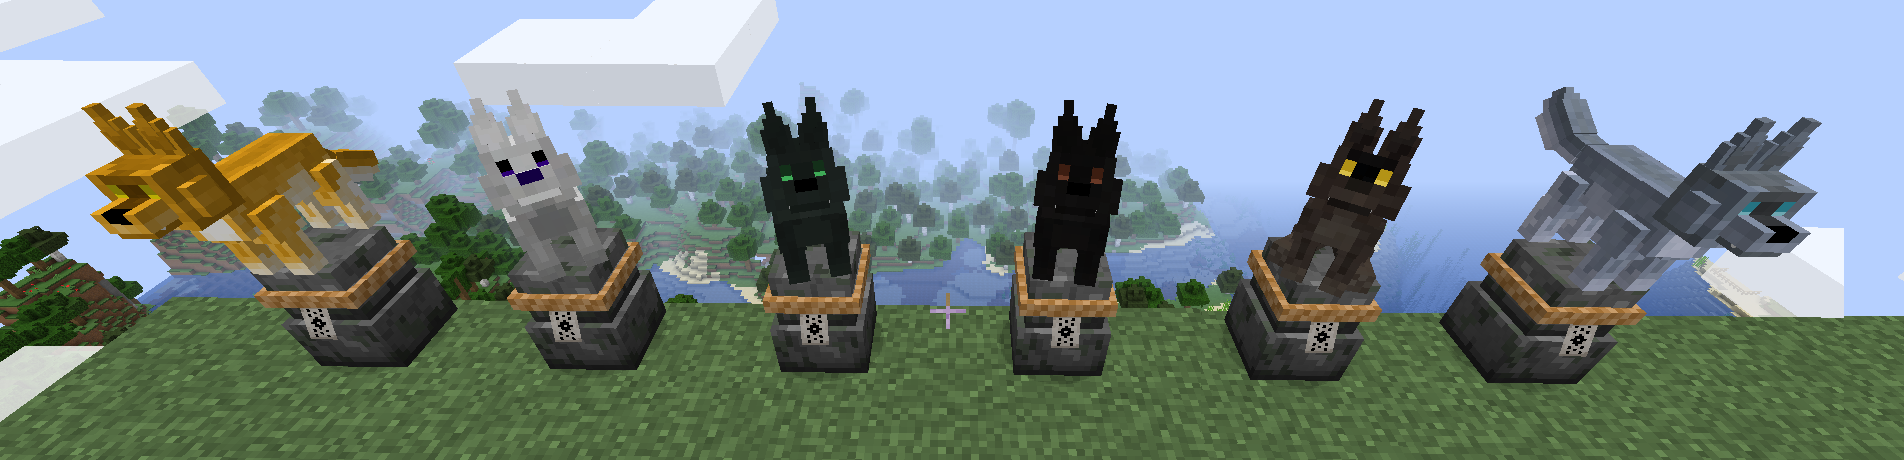 Minecraft Guardians Galore Mod For 1.17.1/1.16.5 (Animal Guards)